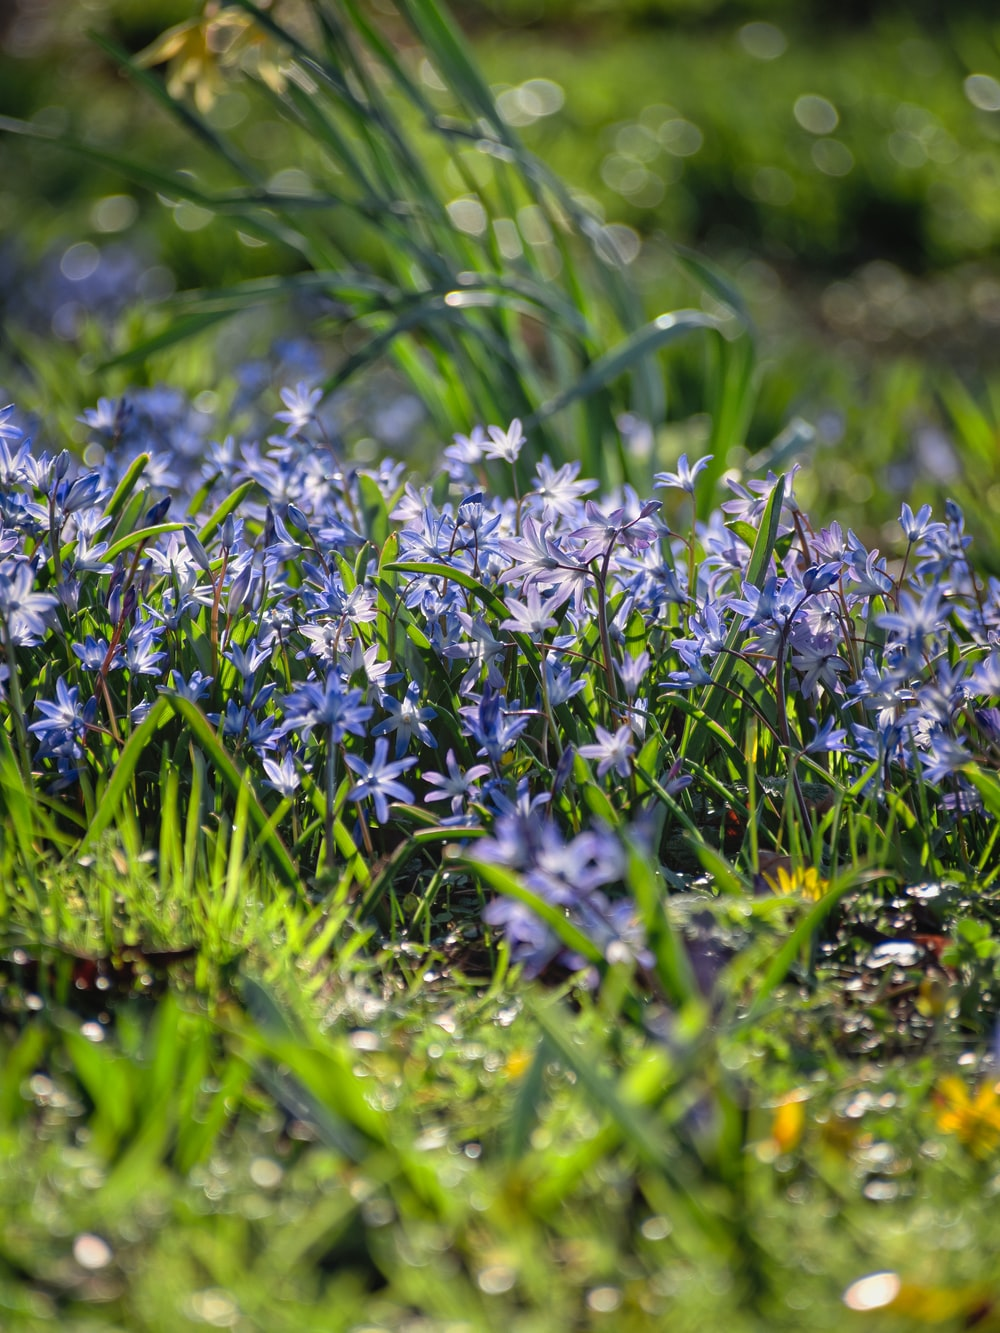 purple flowers on green grass during daytime